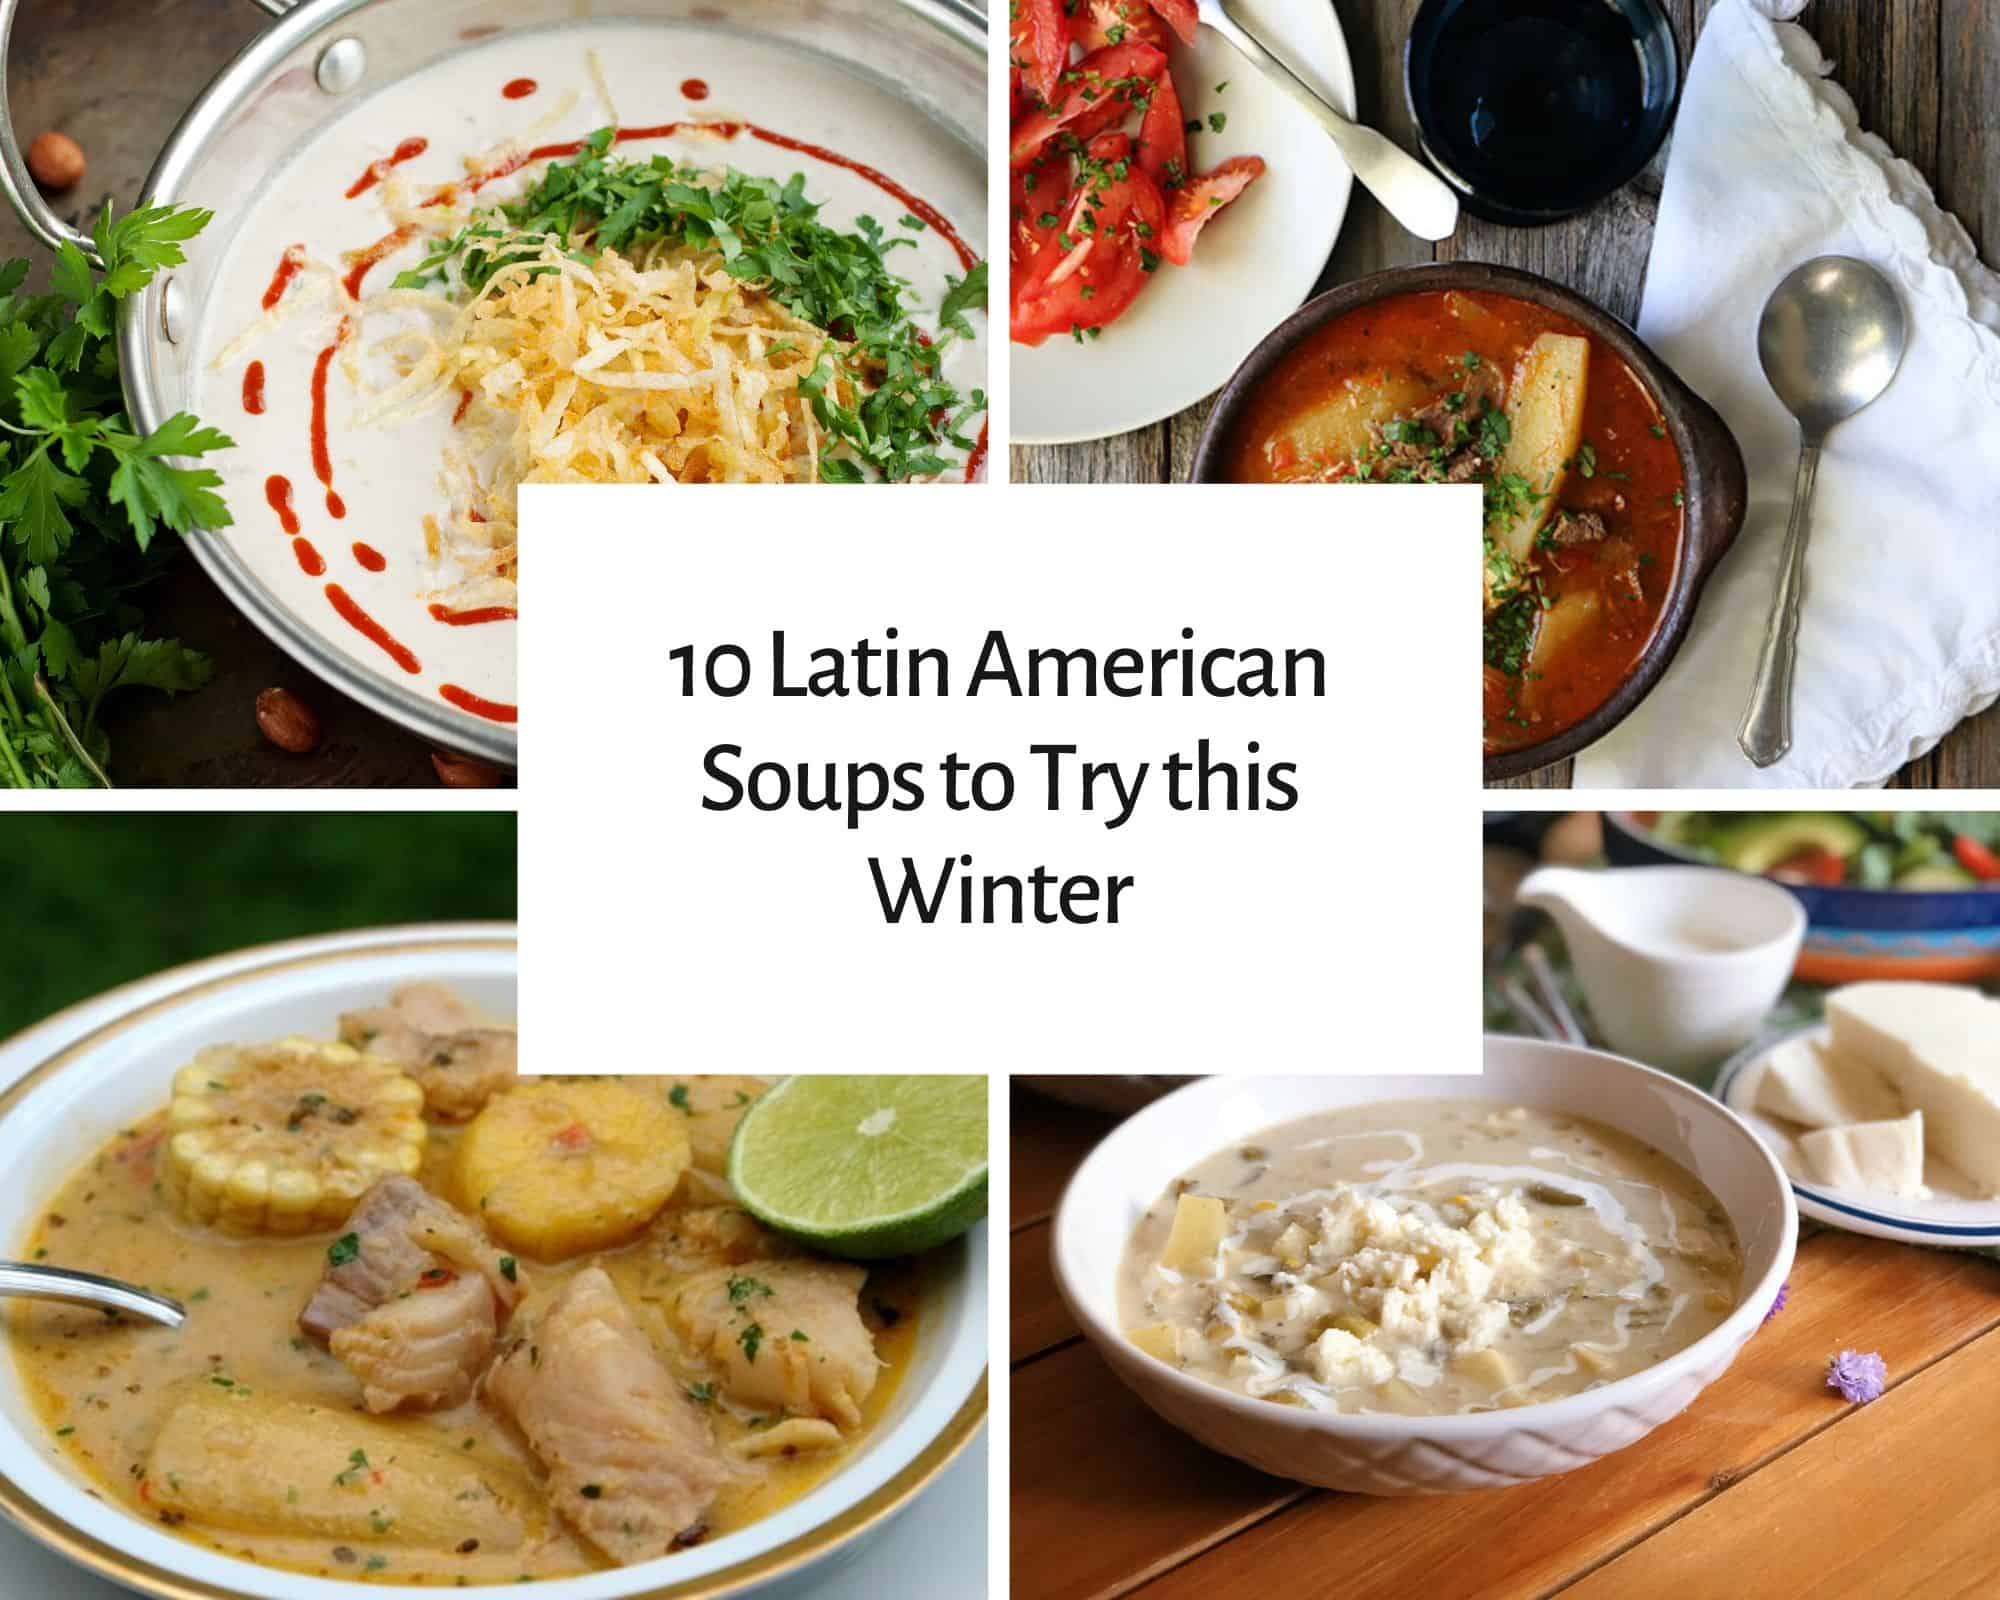 10 Latin American Soups to Try this Winter